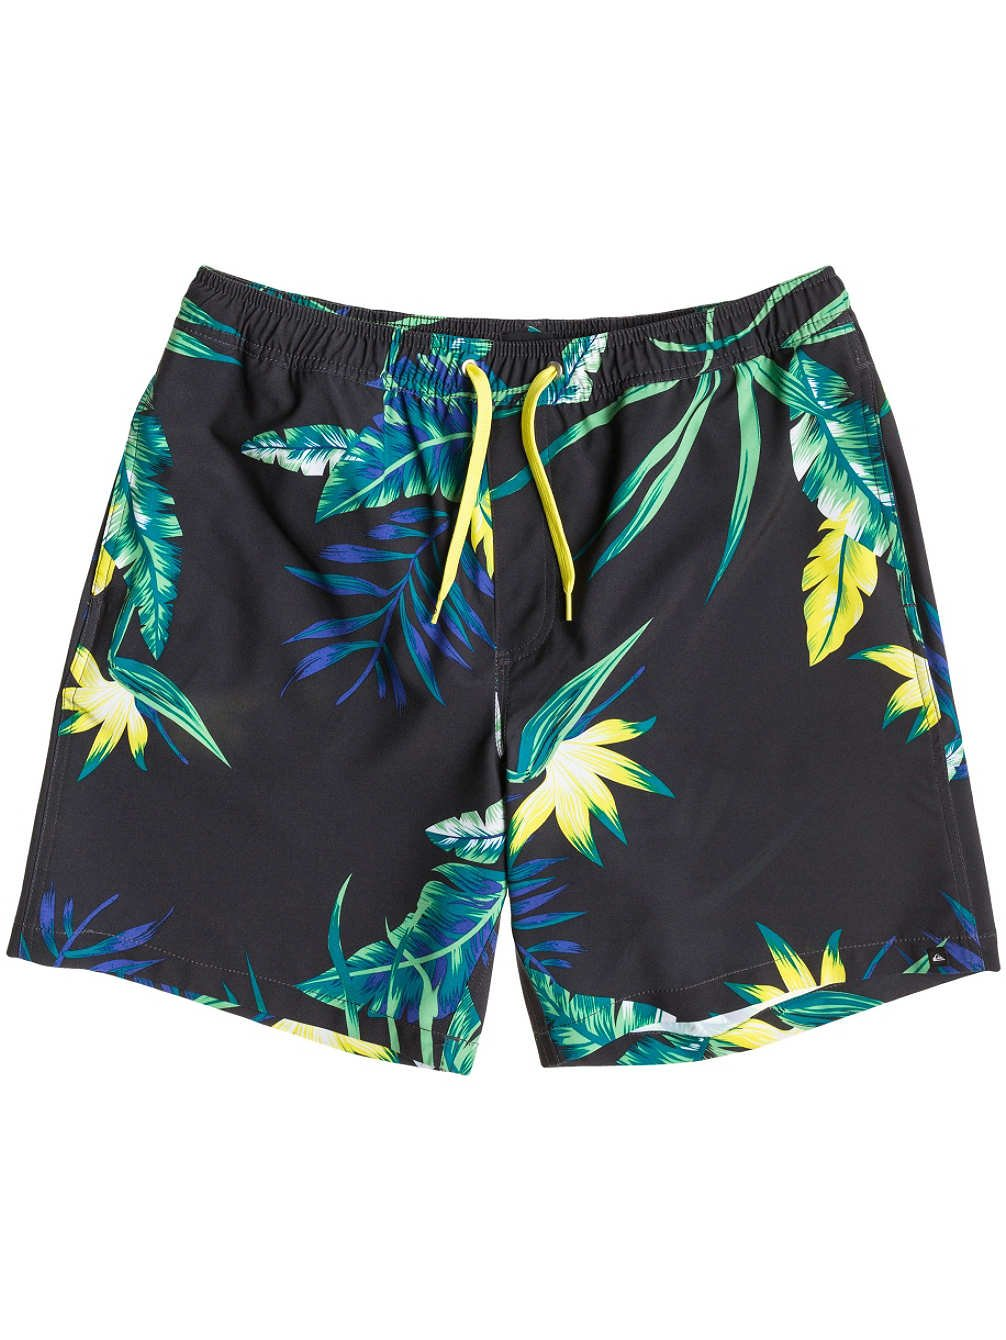 Quiksilver Men's Jungle Juice Frames Swim Shorts Madagascar